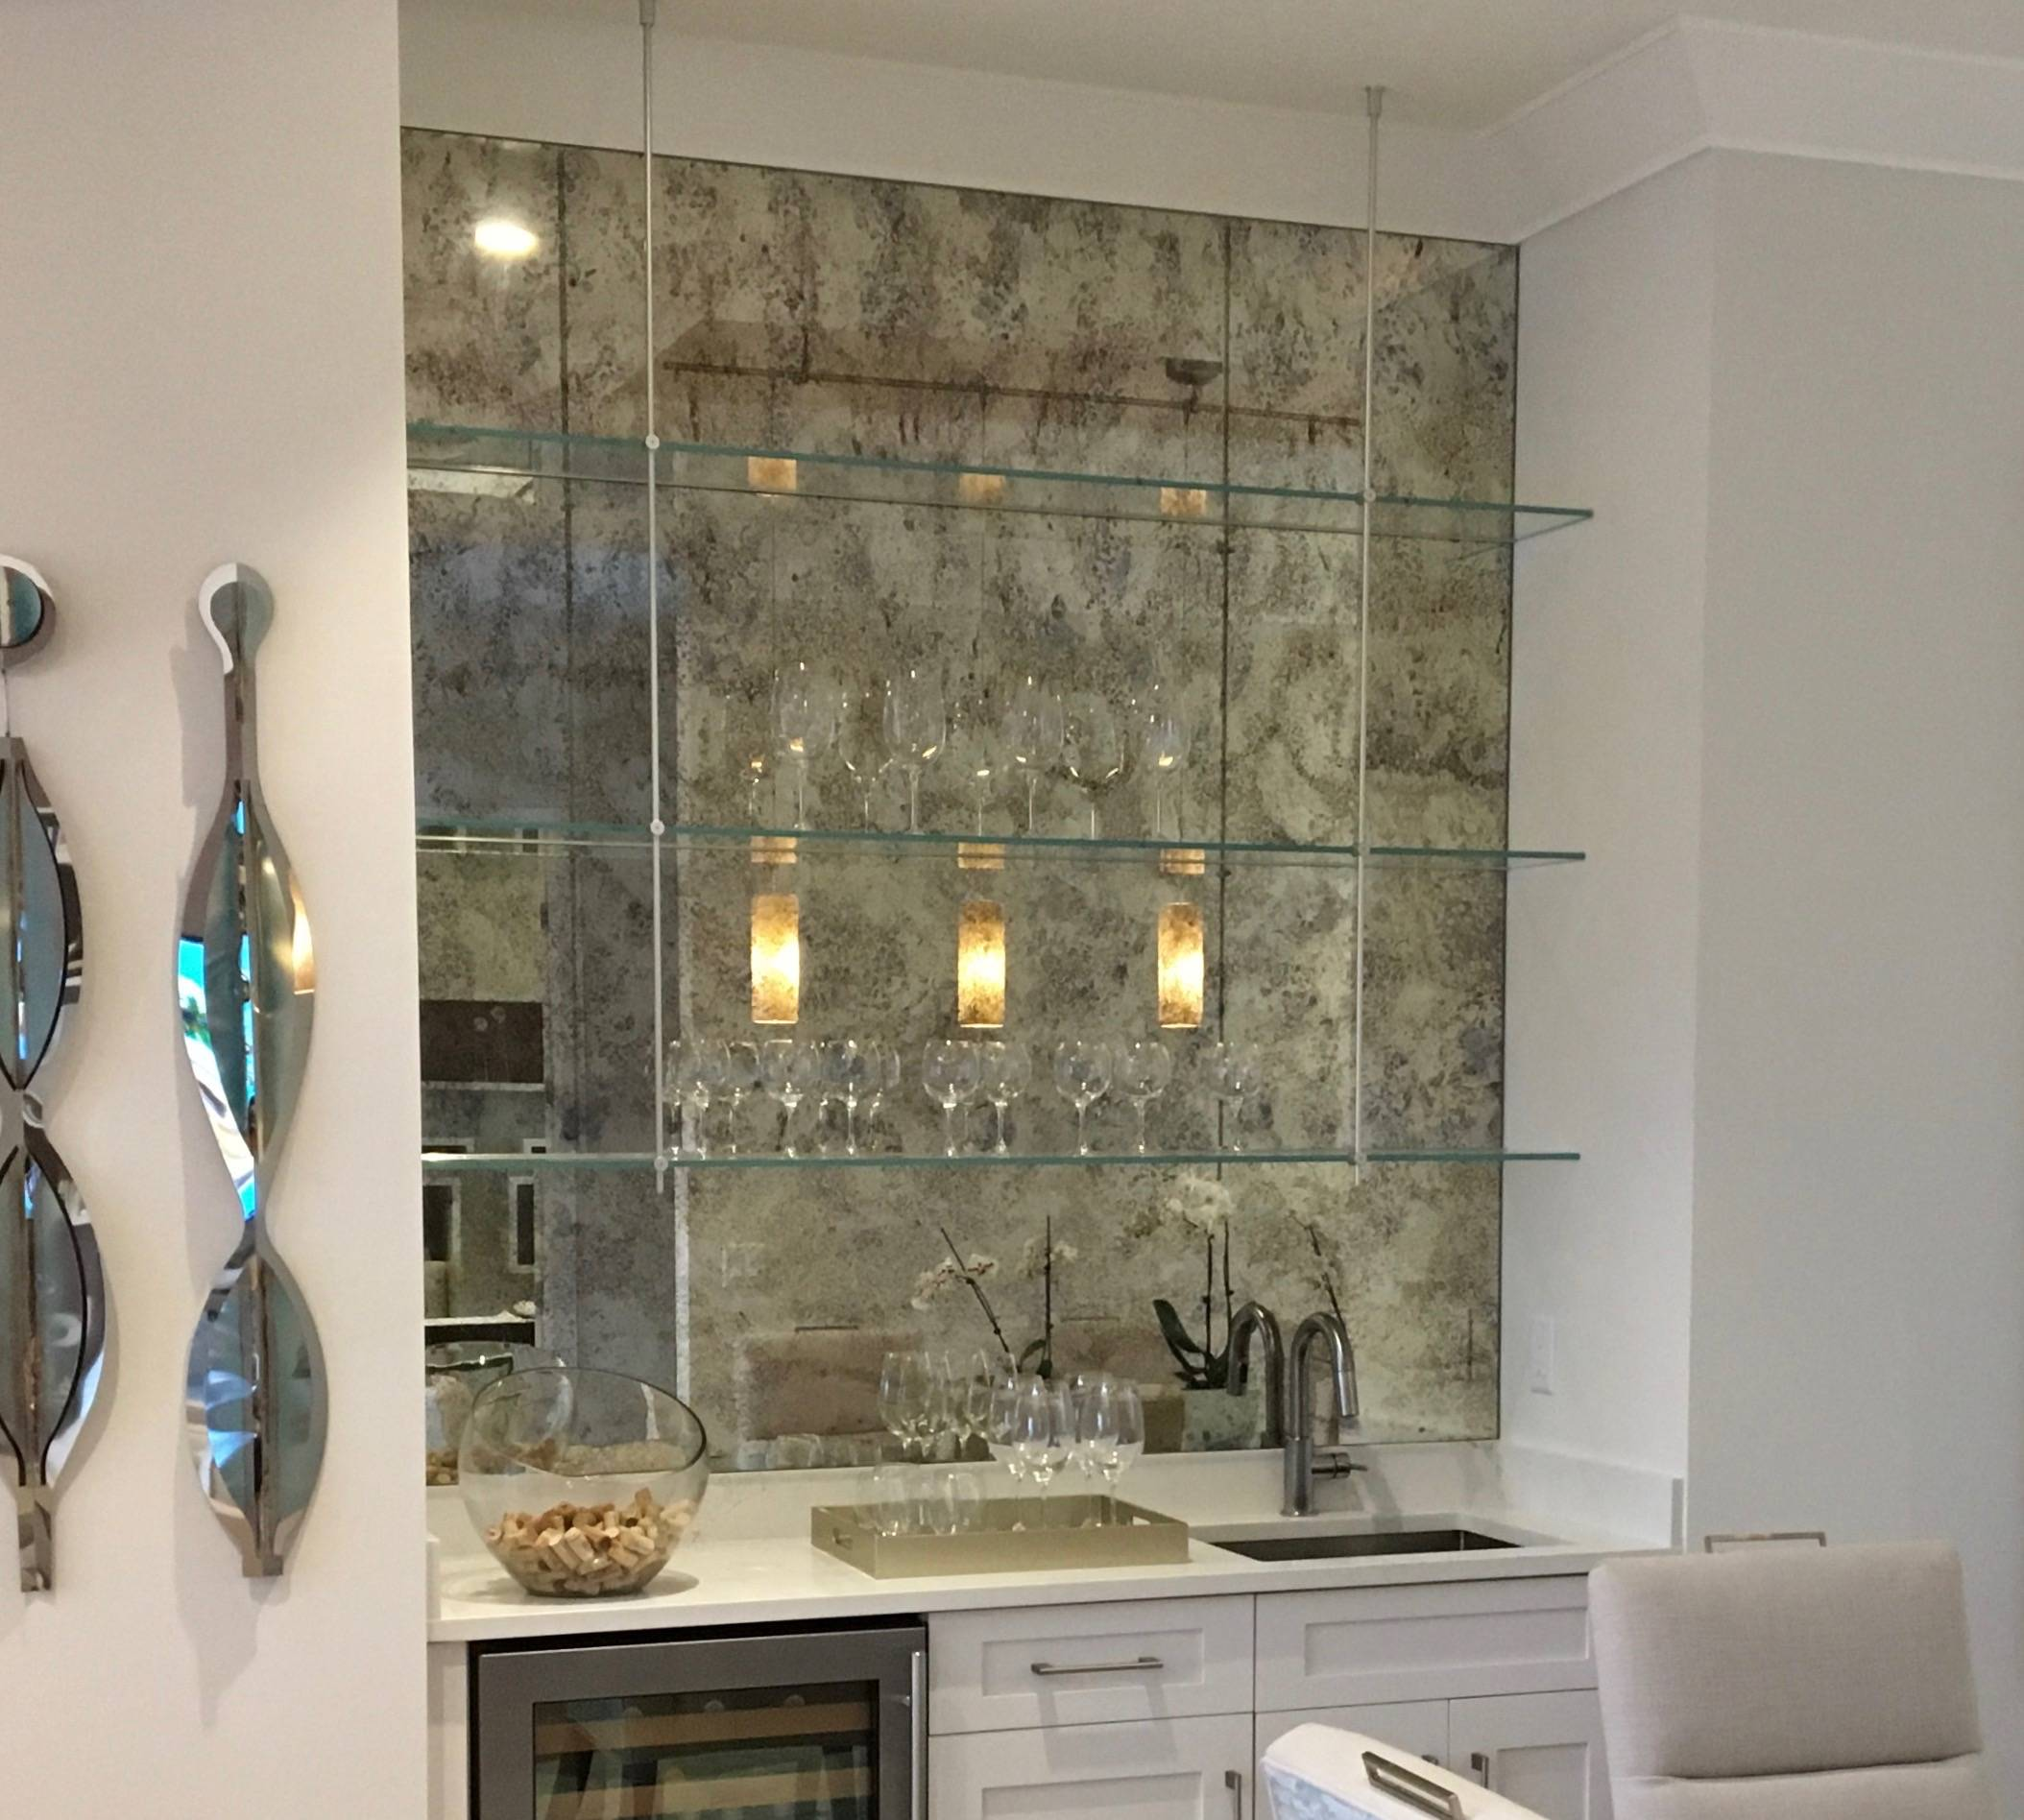 Antique mirrors as a wall accent